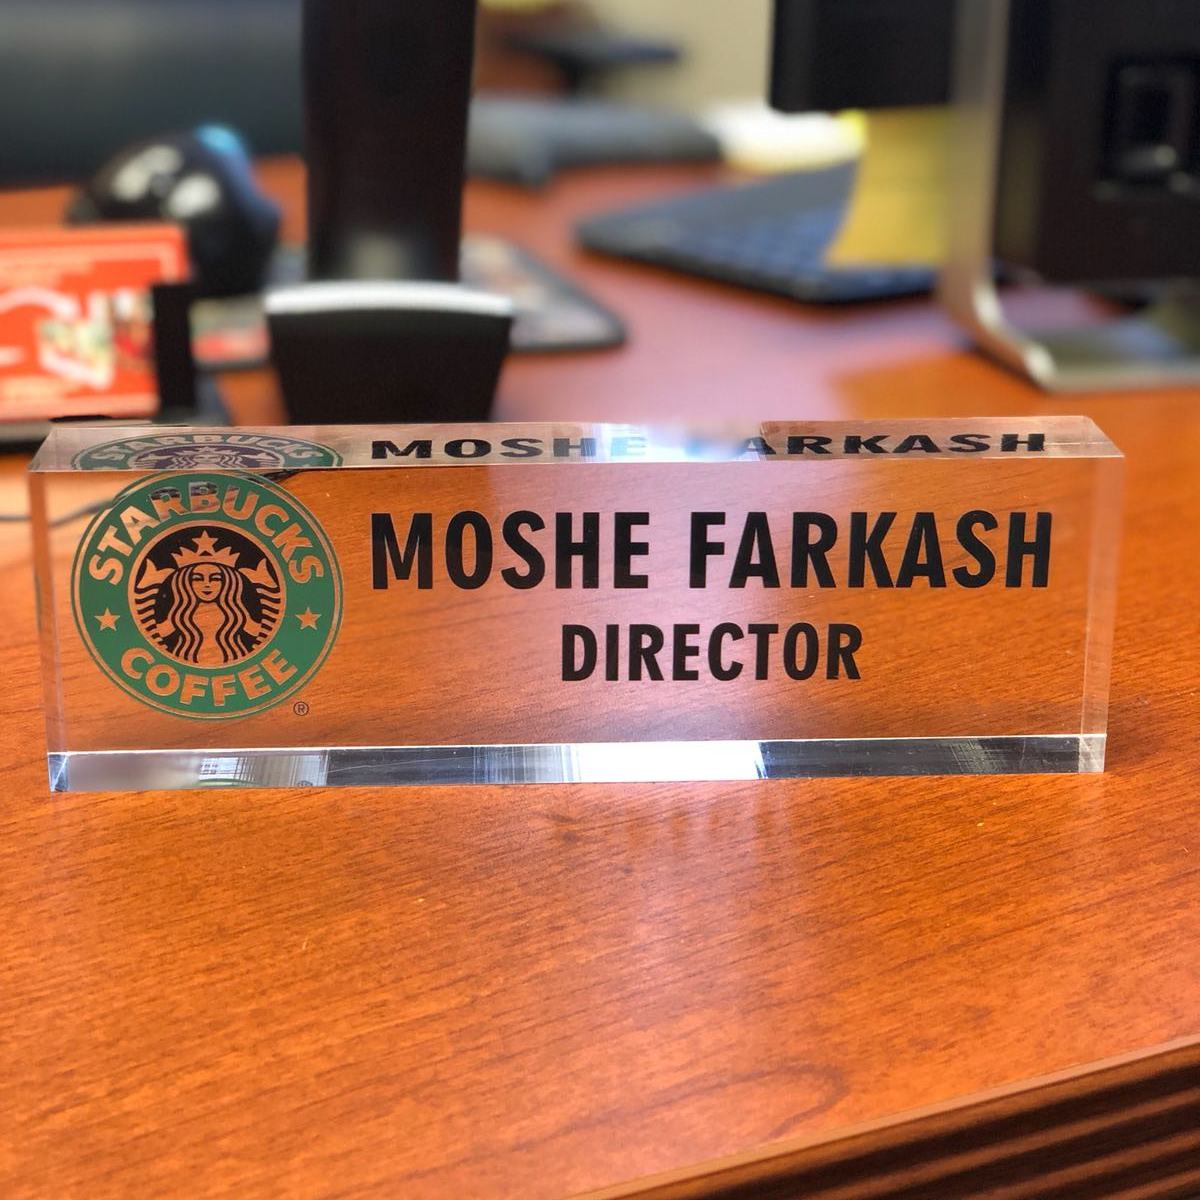 Click here to buy Desk Name Plate Personalized Name, Title & Logo on Premium Clear Acrylic Glass Block Custom Office Desk... by Artblox.